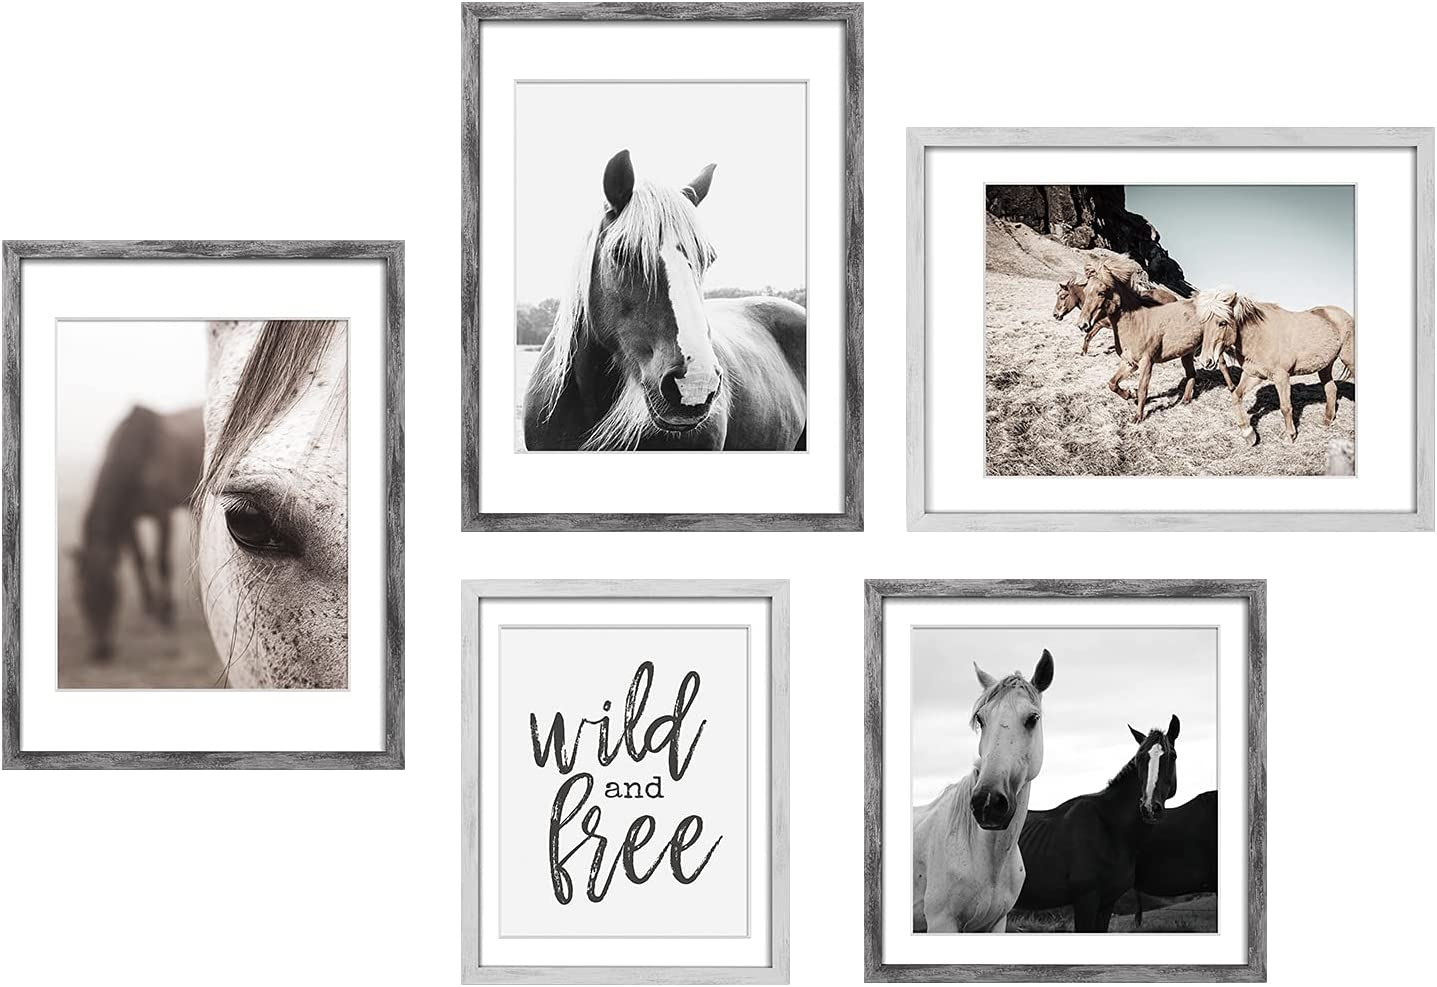 ArtbyHannah 5 Pack Framed Rustic Farmhouse Horse Wall Art Decor Picture Frame Set with Animal Art Prints Photo Frame Artwork for Gallery Wall Kit for Bedroom Living Room Bathroom Decoration